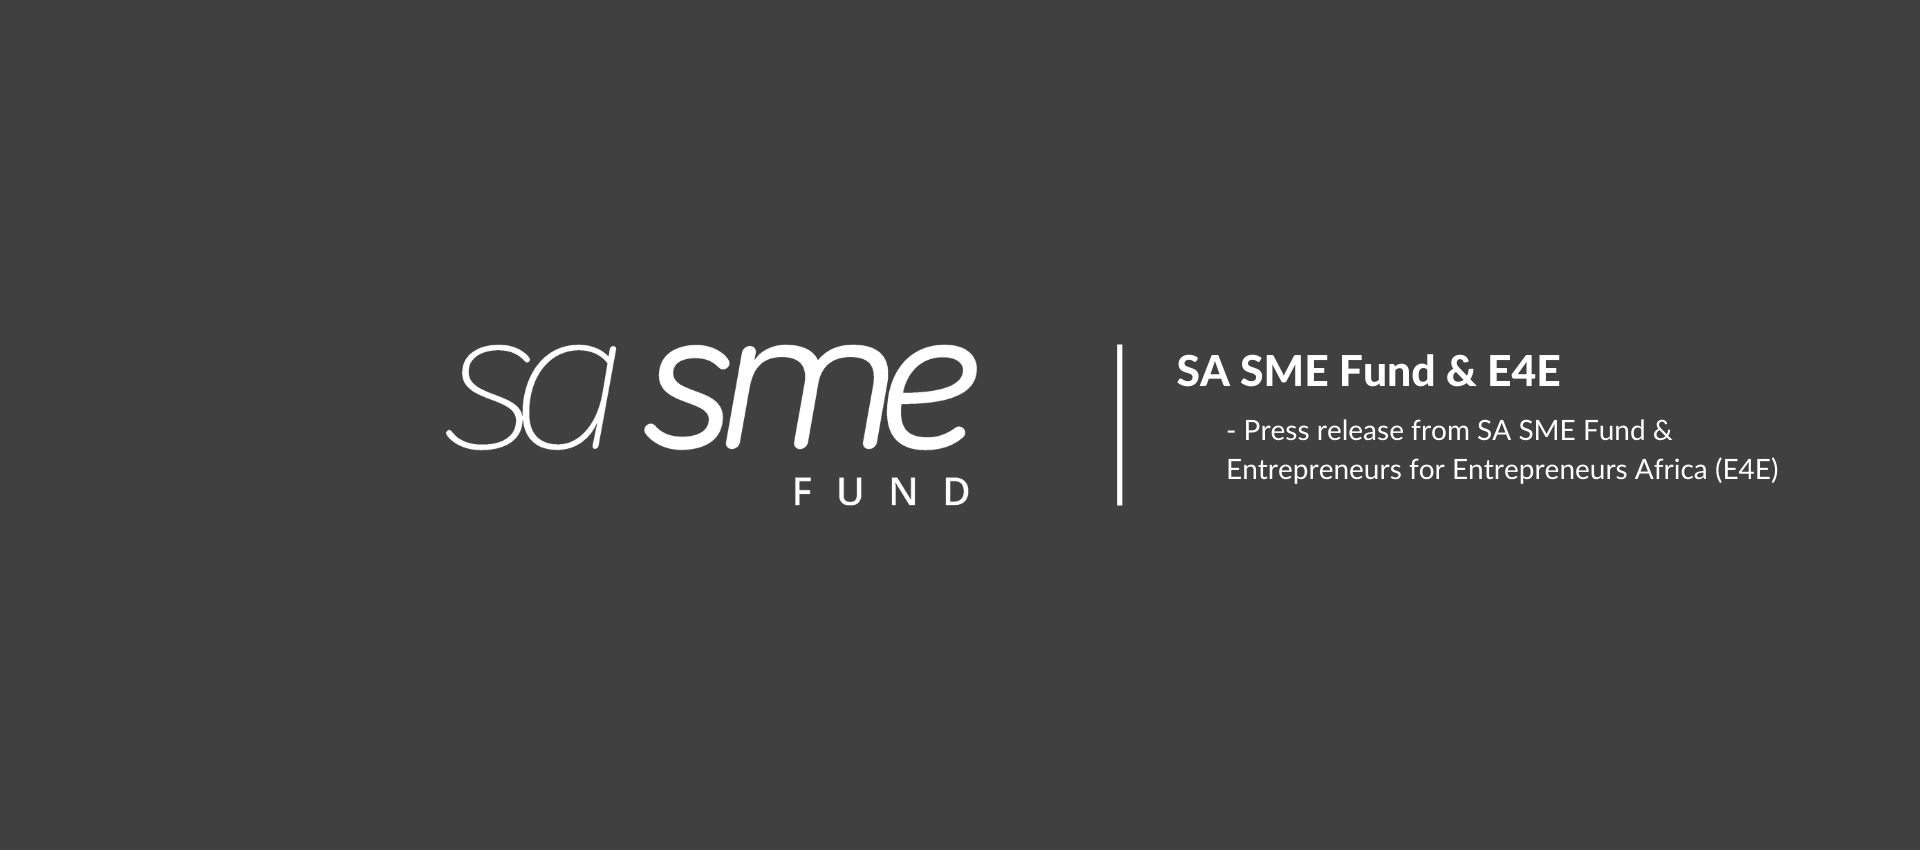 Entrepreneur-driven Venture Capital Fund E4E Africa launches, backed by SA SME Fund